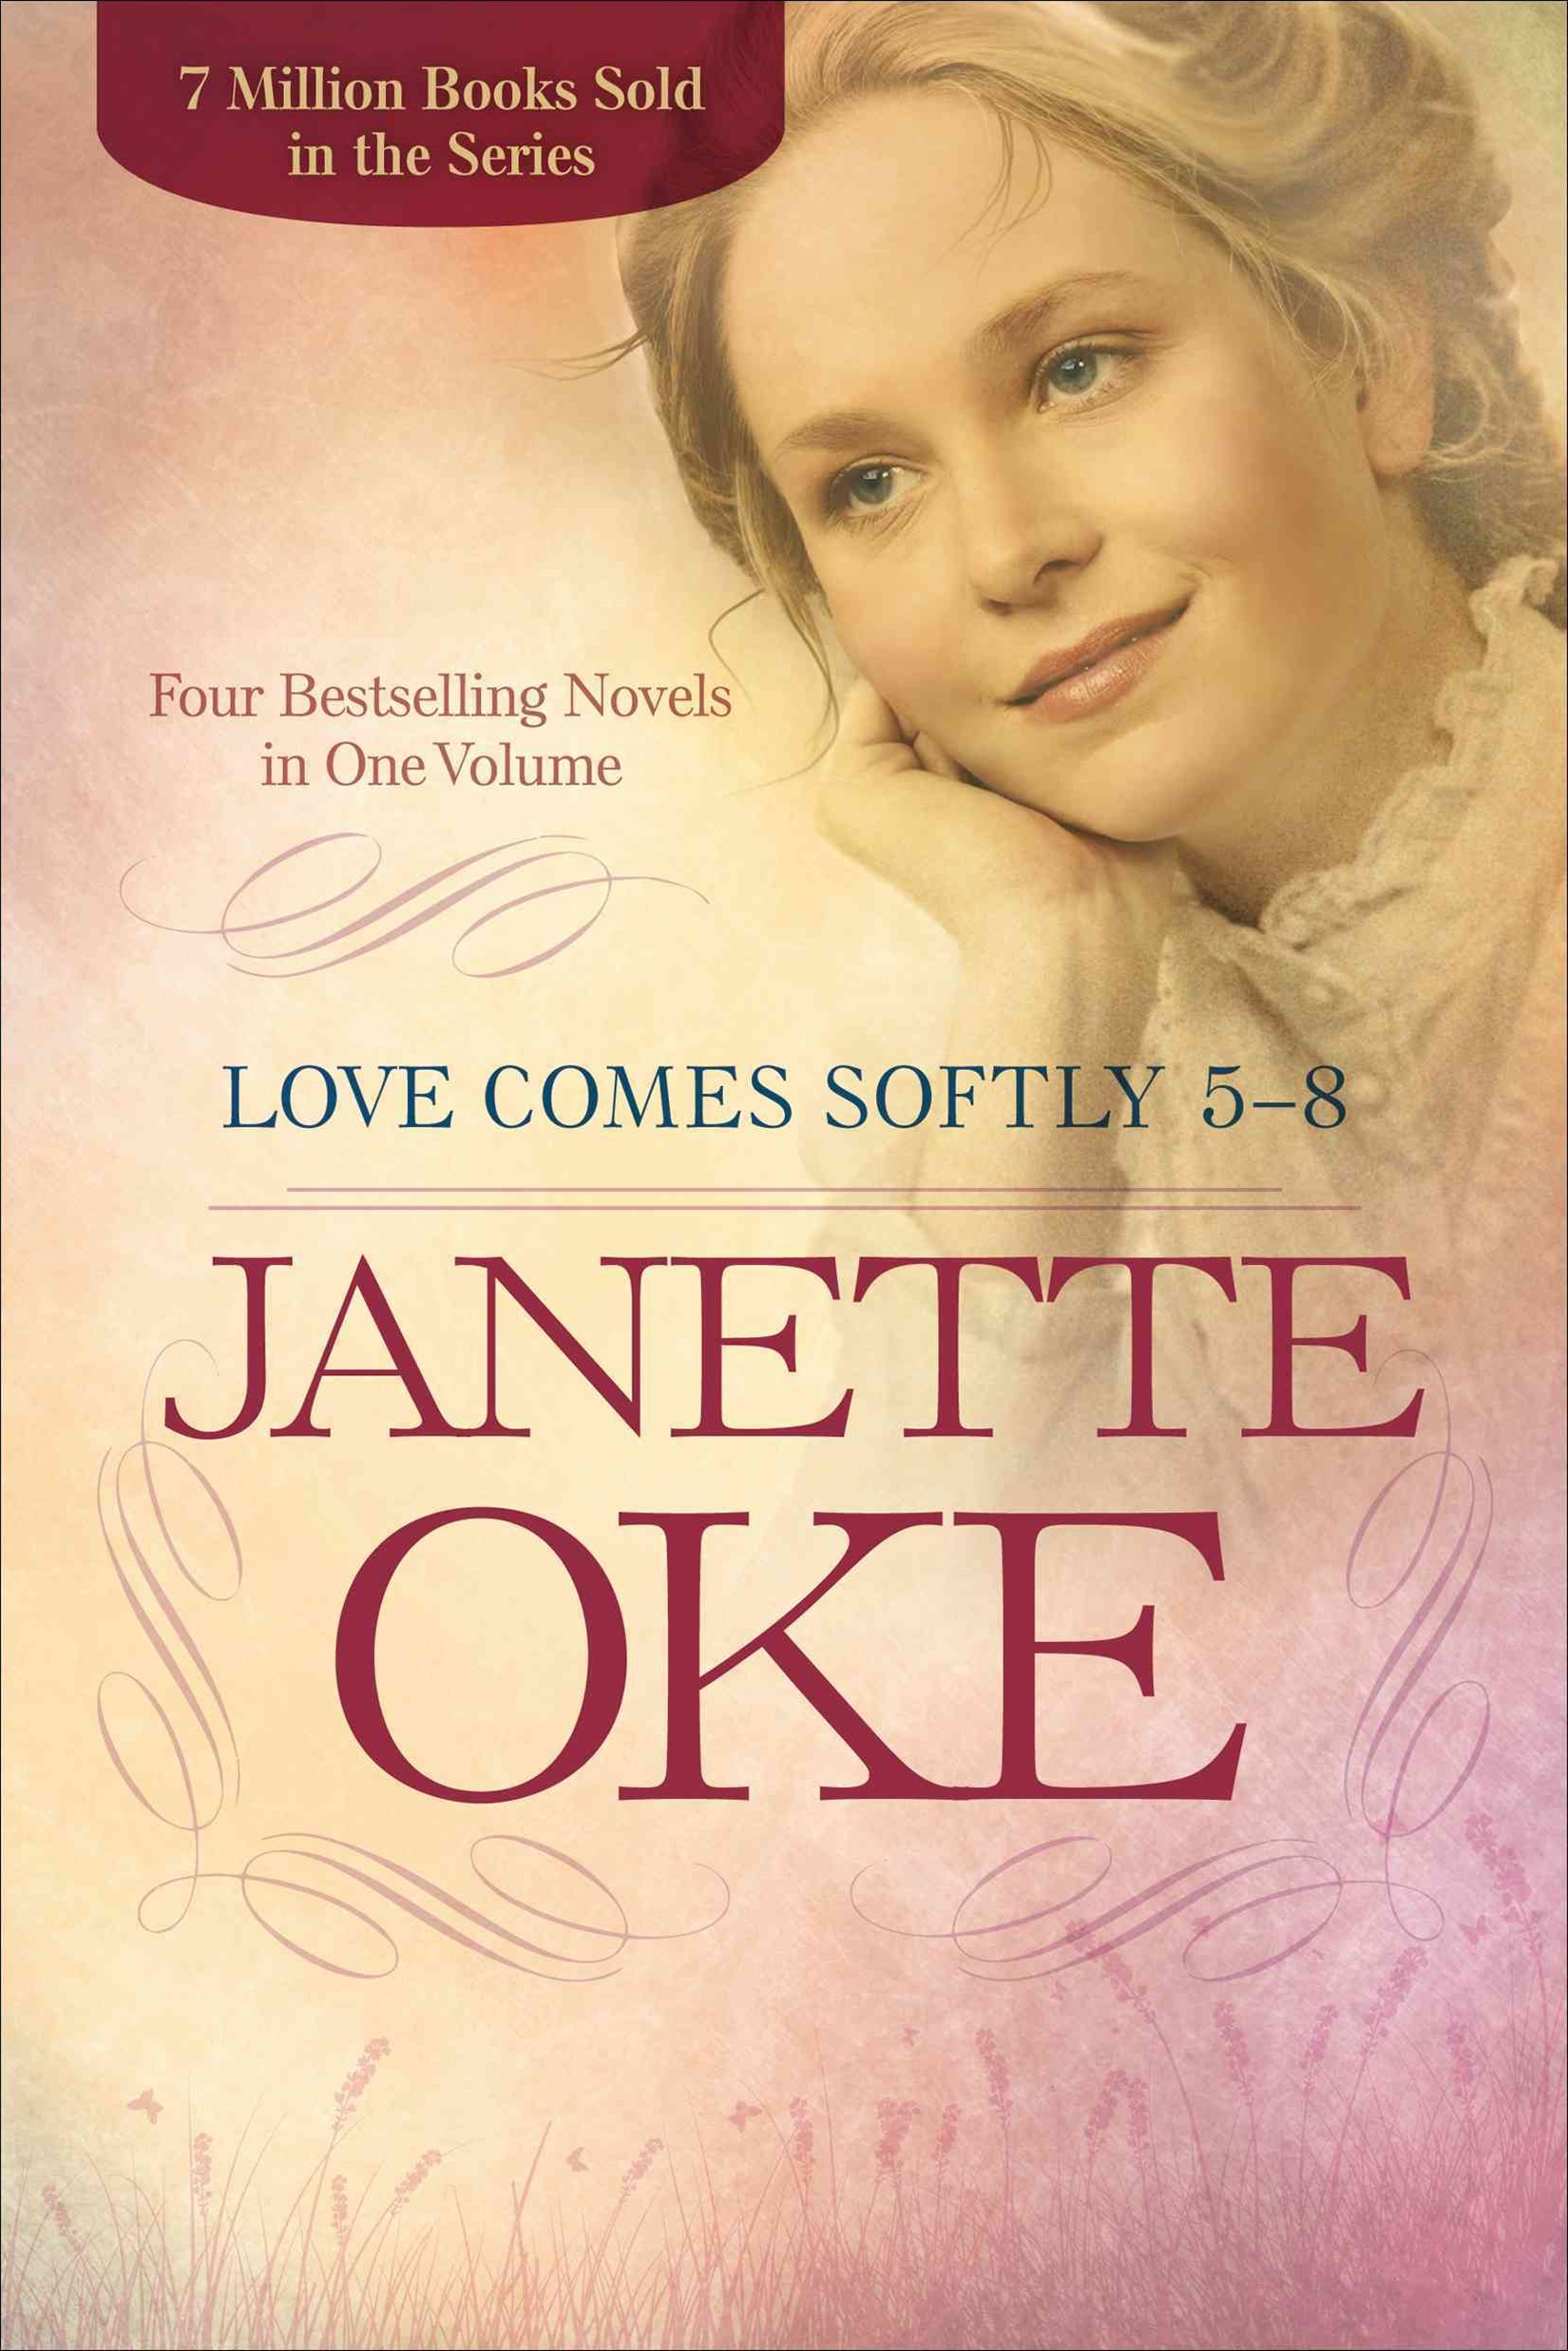 Love Comes Softly 5-8